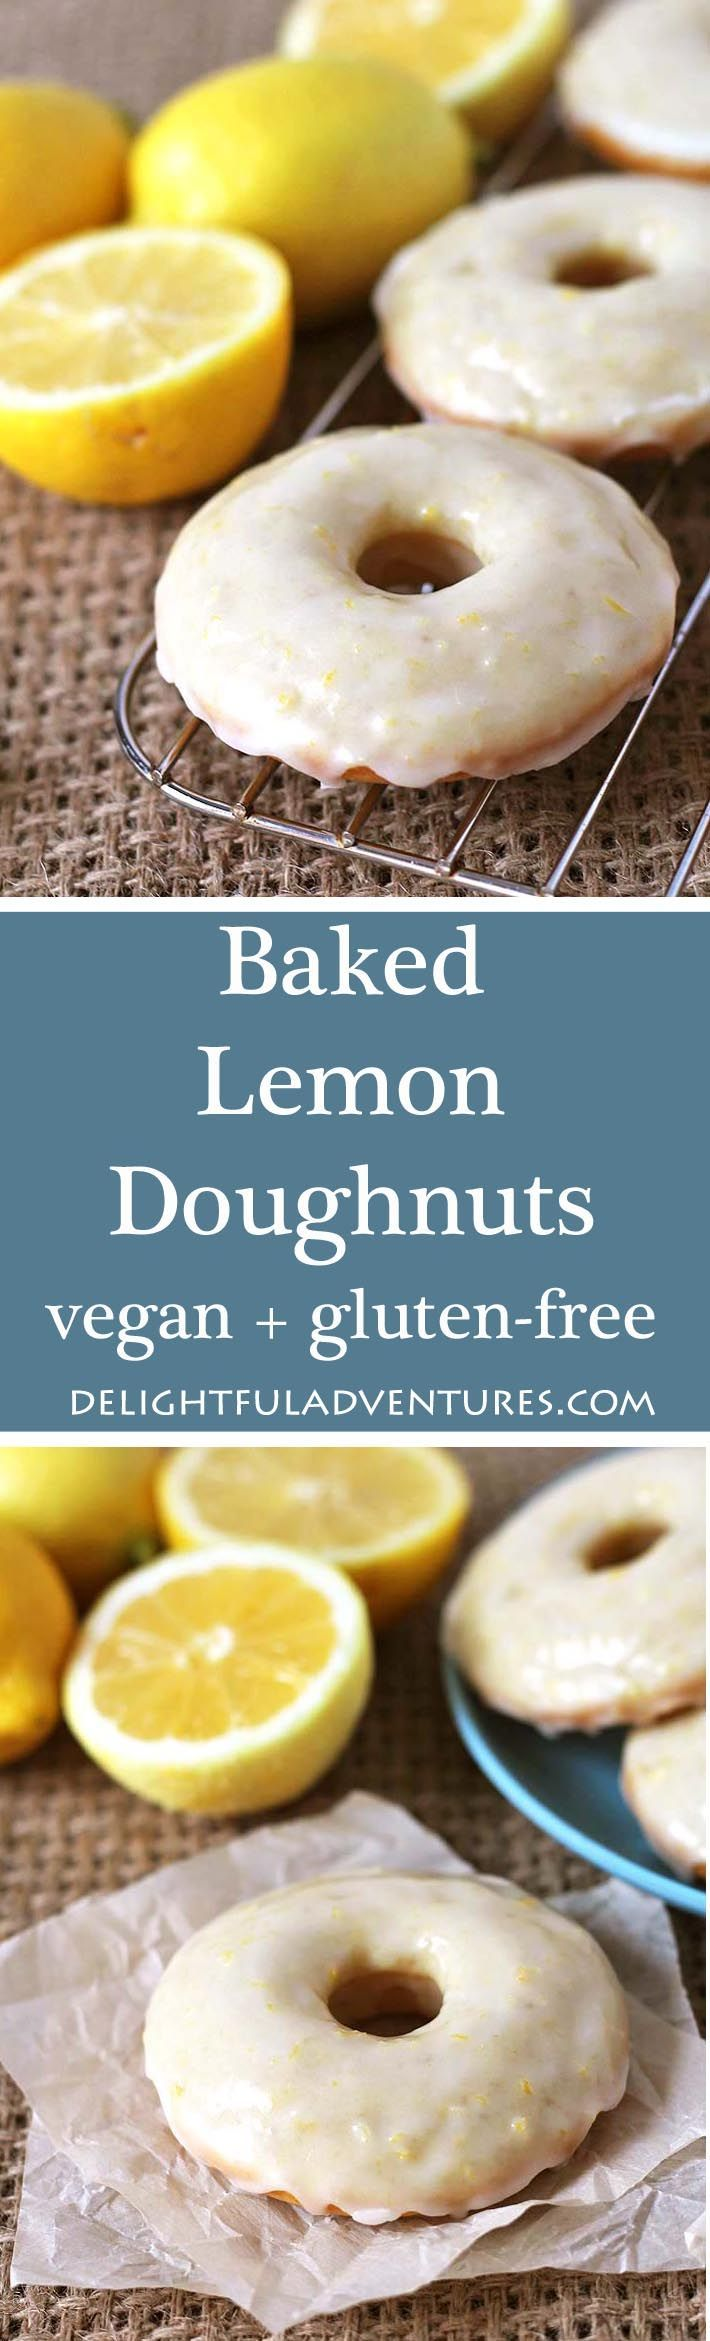 Baked Lemon Doughnuts Family and friends will be asking for more when you make them these sweet, tangy, vegan baked lemon doughnuts with lemon glaze! Recipe contains a gluten free option! via @delighfuladvFamily and friends will be asking for more when you make them these sweet, tangy, vegan baked lemon doughnuts with lemon glaze! Recipe contains a gluten free...